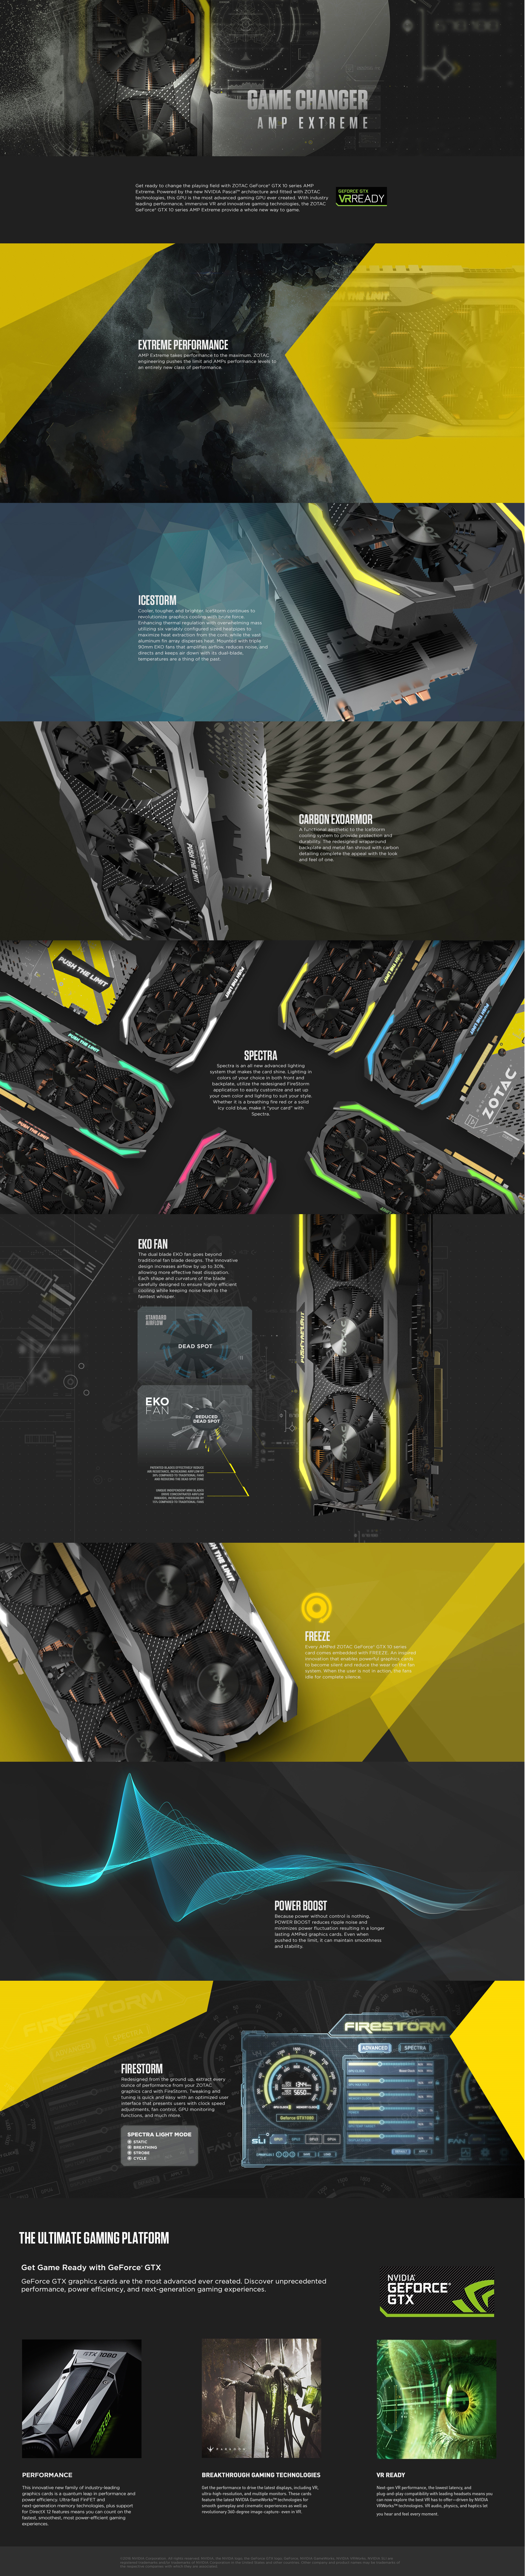 https://www.zotac.com/download/files/overview/untitled-1.jpg